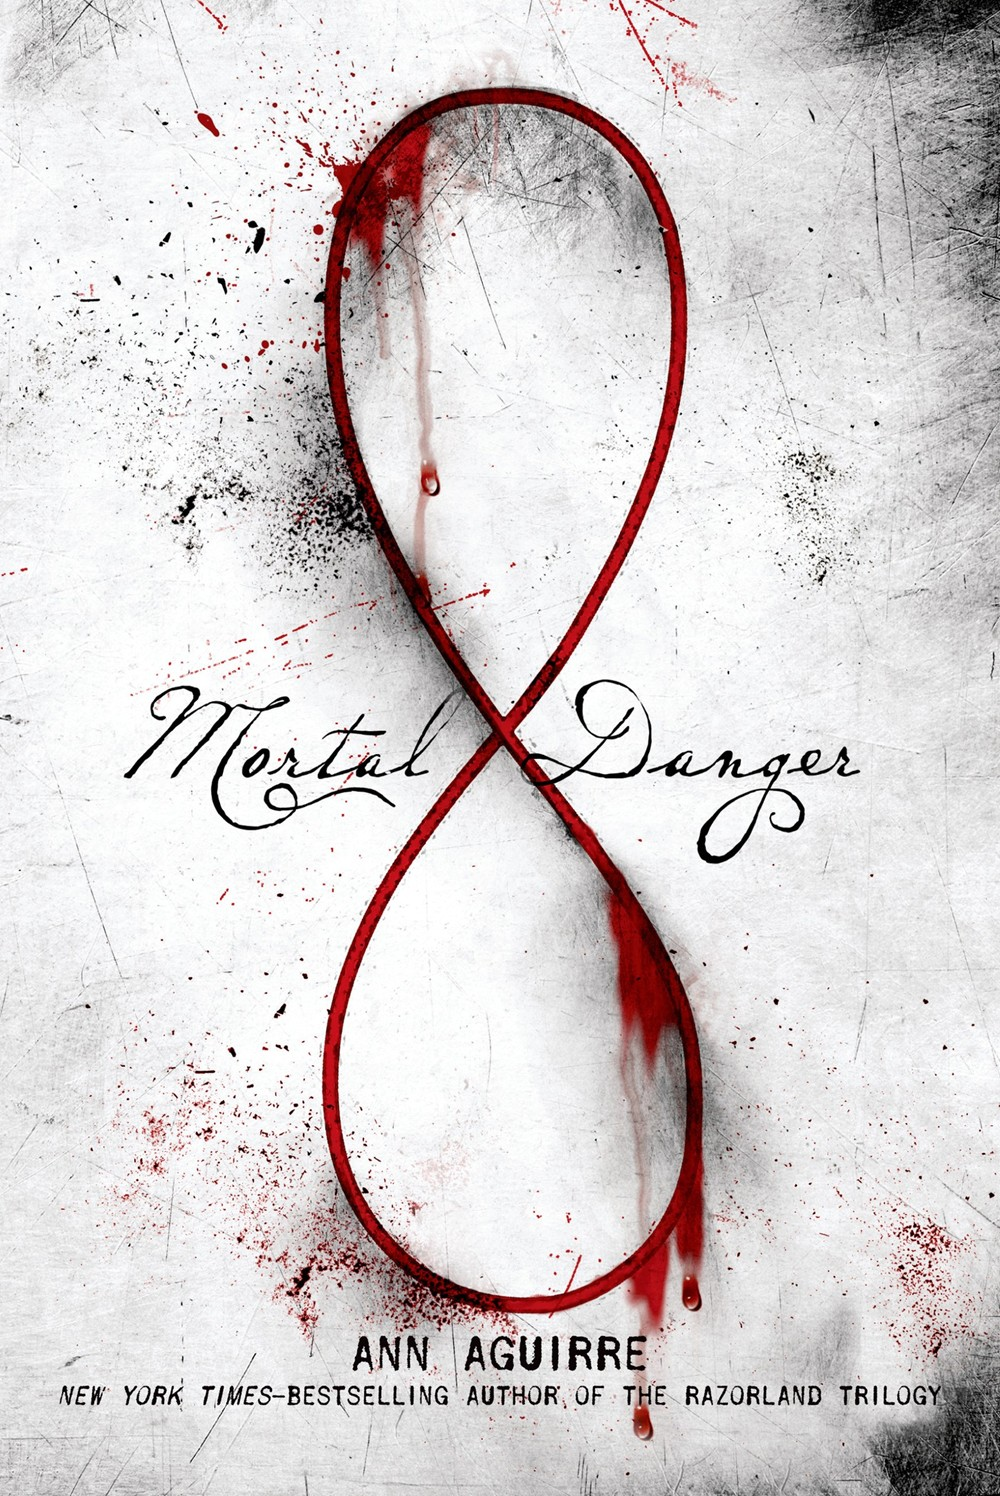 Mortal Danger by Ann Aguirre Amazon | Goodreads